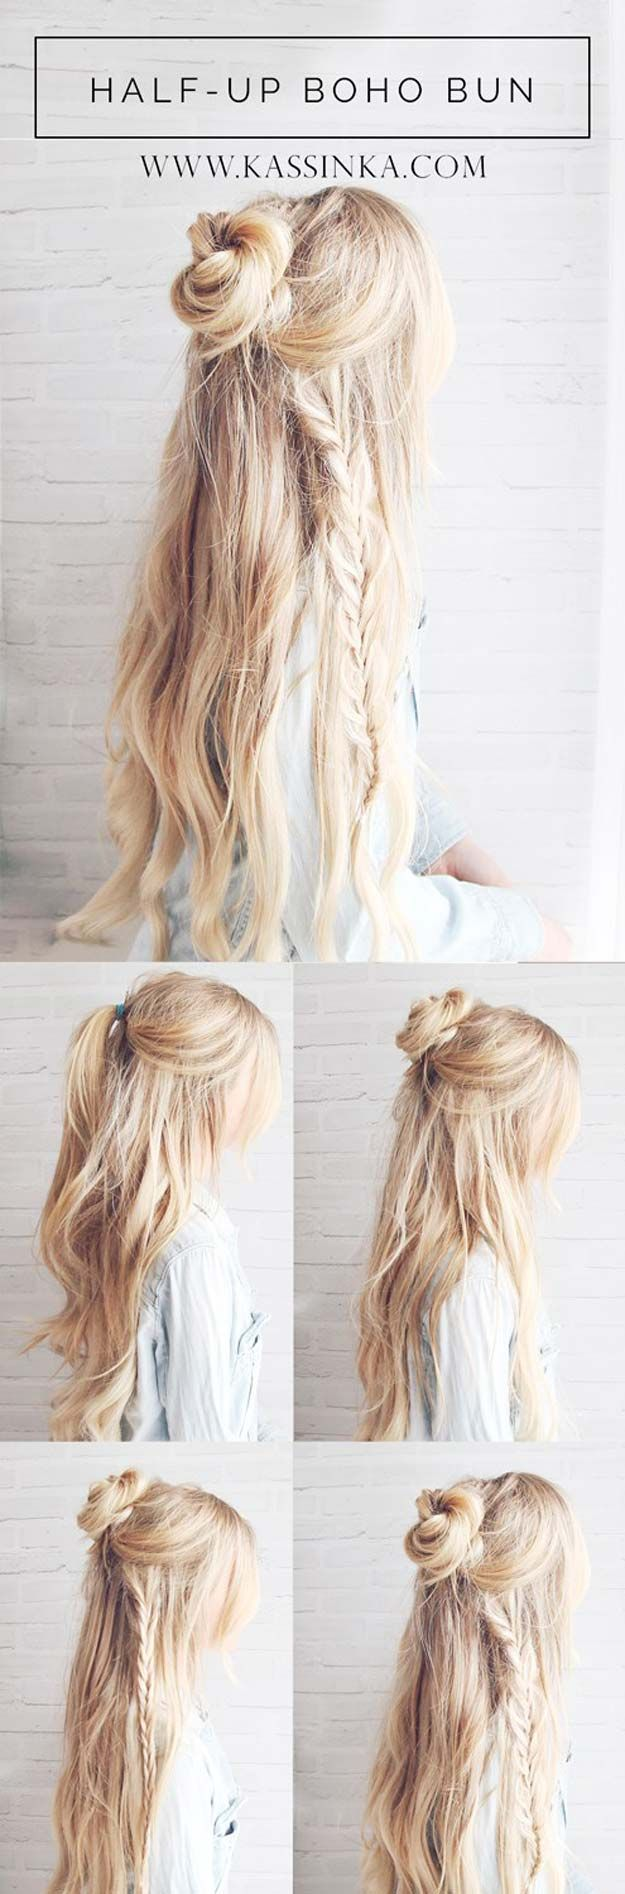 Festival Hair Tutorials - Half-up Boho Braided Bun Hair Tutorial - Short Quick and Easy Tutorial Guides and How Tos for Braids, Curly Hair, Long Hair, Medium Hair, and that Perfect Updo - Great Ideas for That Summer Music Edm Show, Whether It's A New Hair Color or Some Awesome Accessories and Flowers - Boho and Bohemian Styles with Glitter and a Headband - thegoddess.com/festival-hair-tutorials